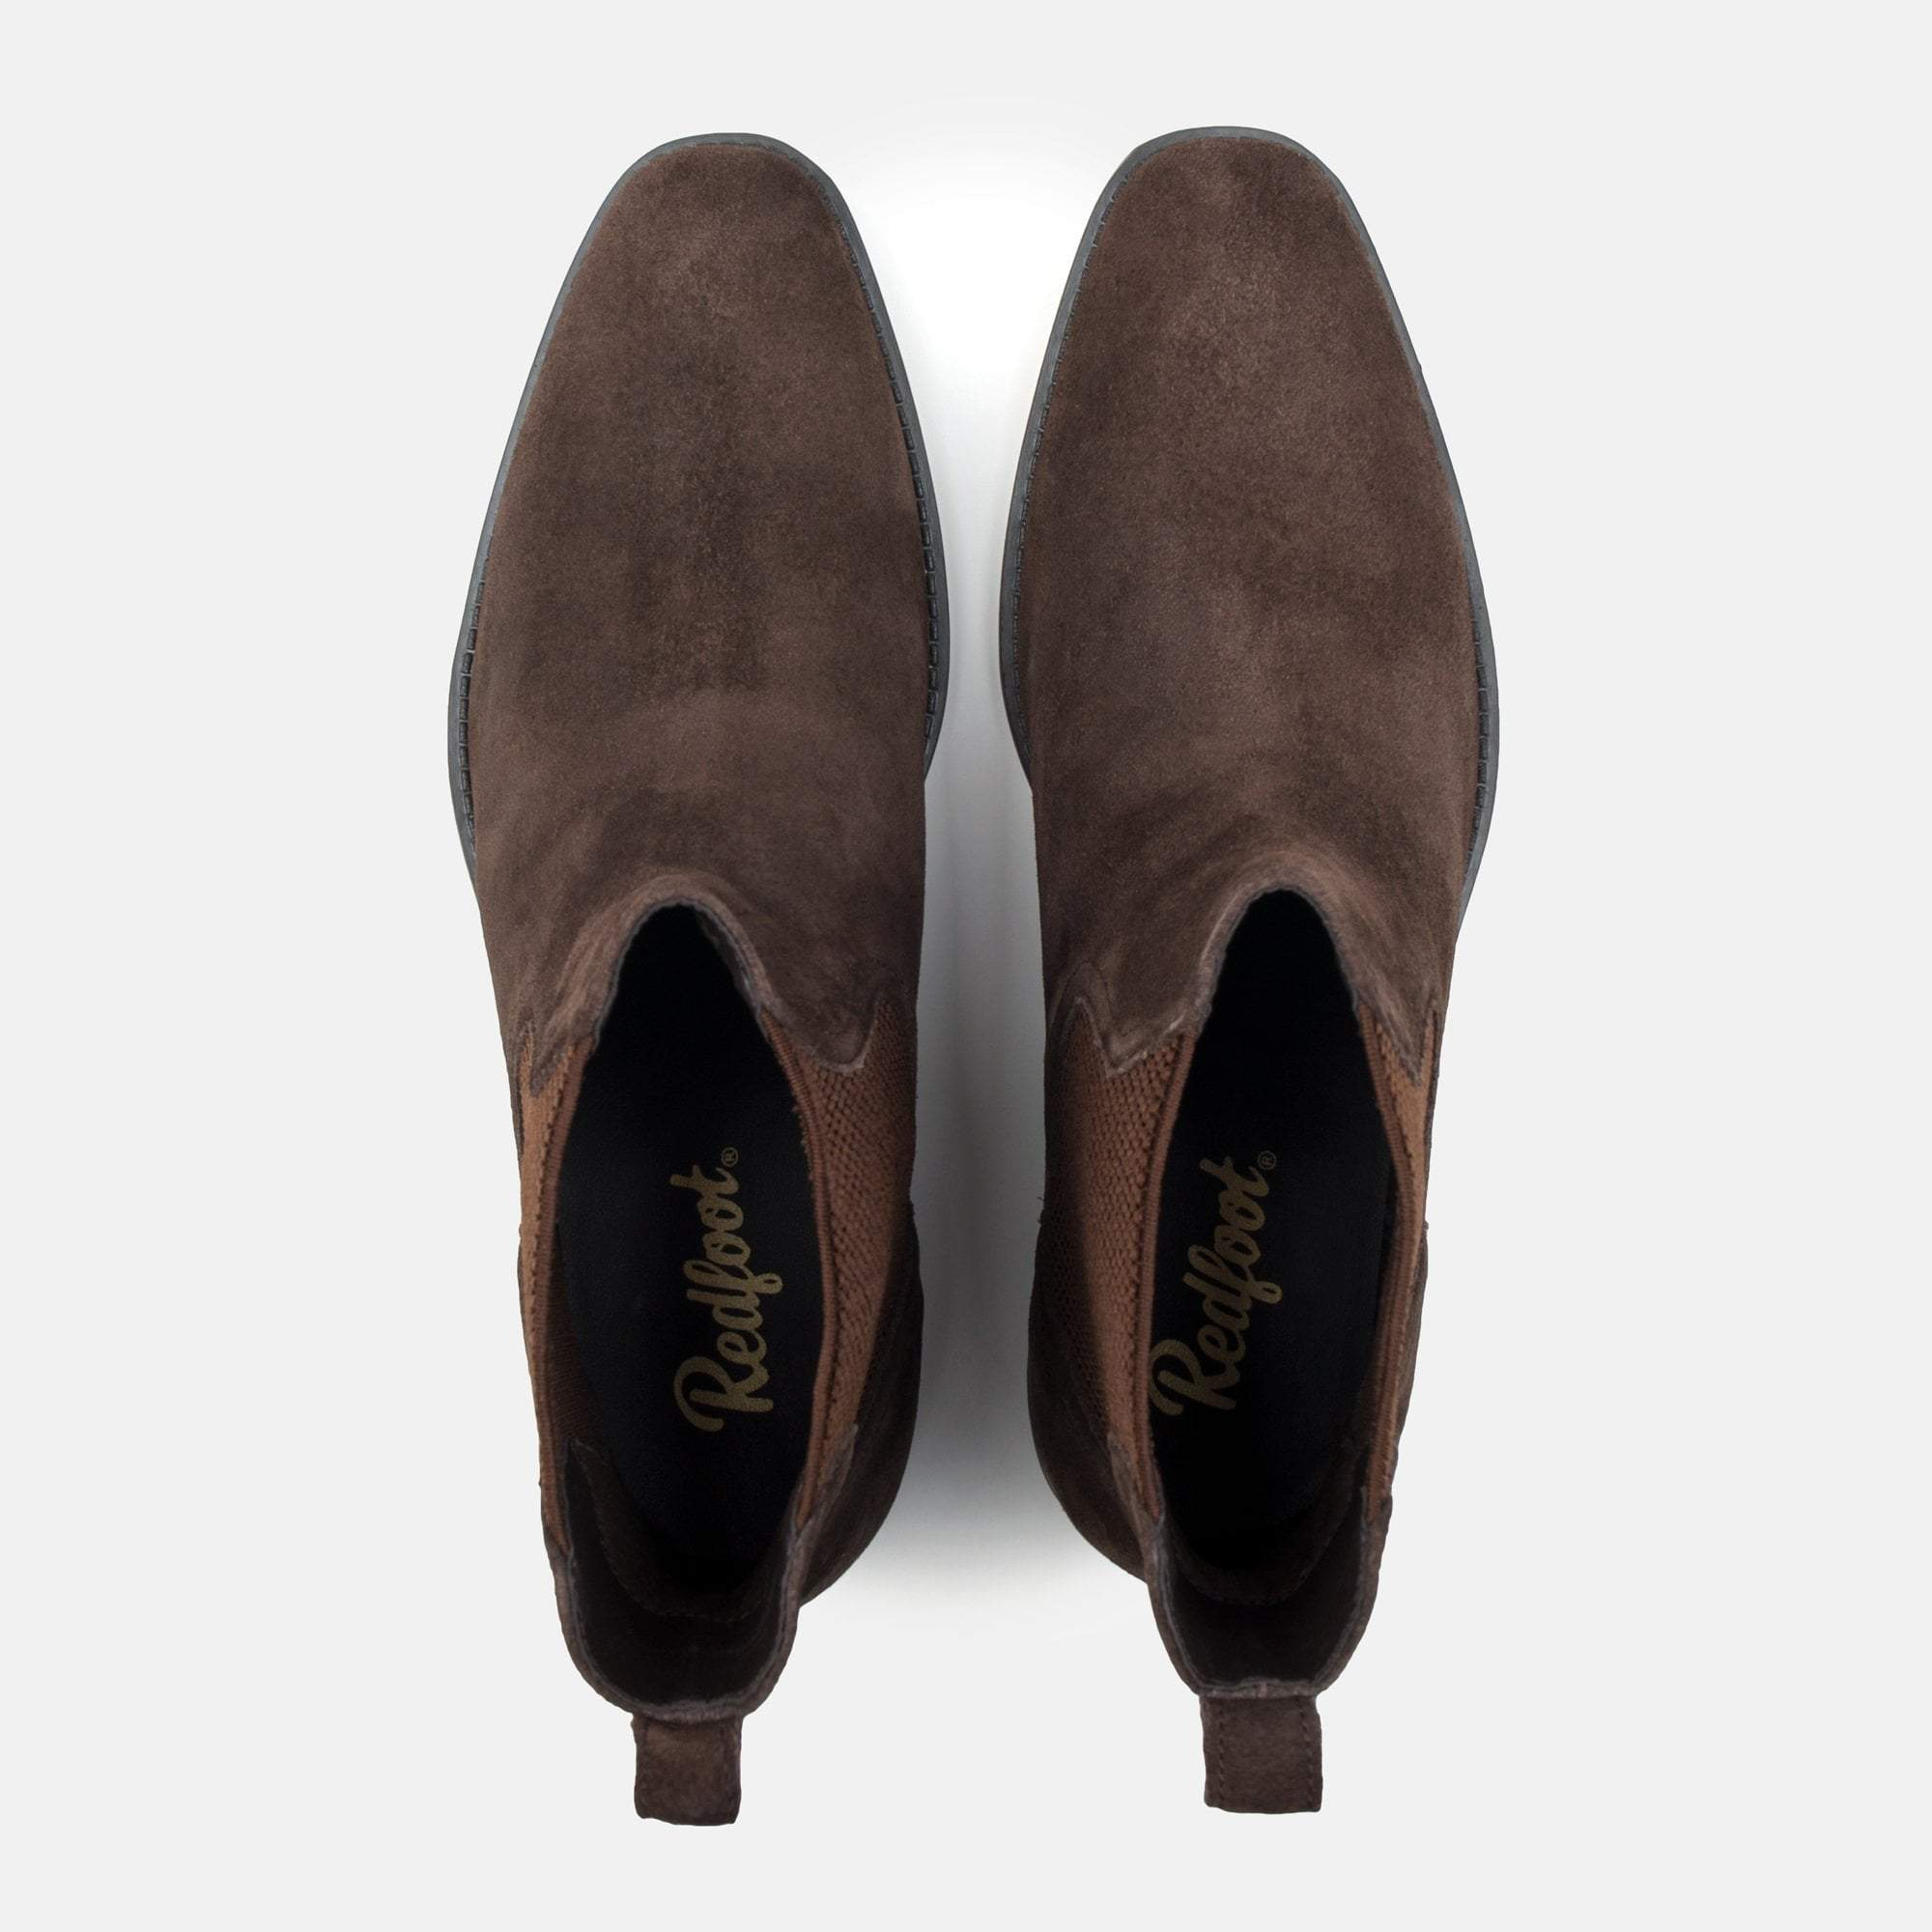 Redfoot Footwear UK 6 / EURO 39 / US 7 / Navy / Suede THOMAS BROWN